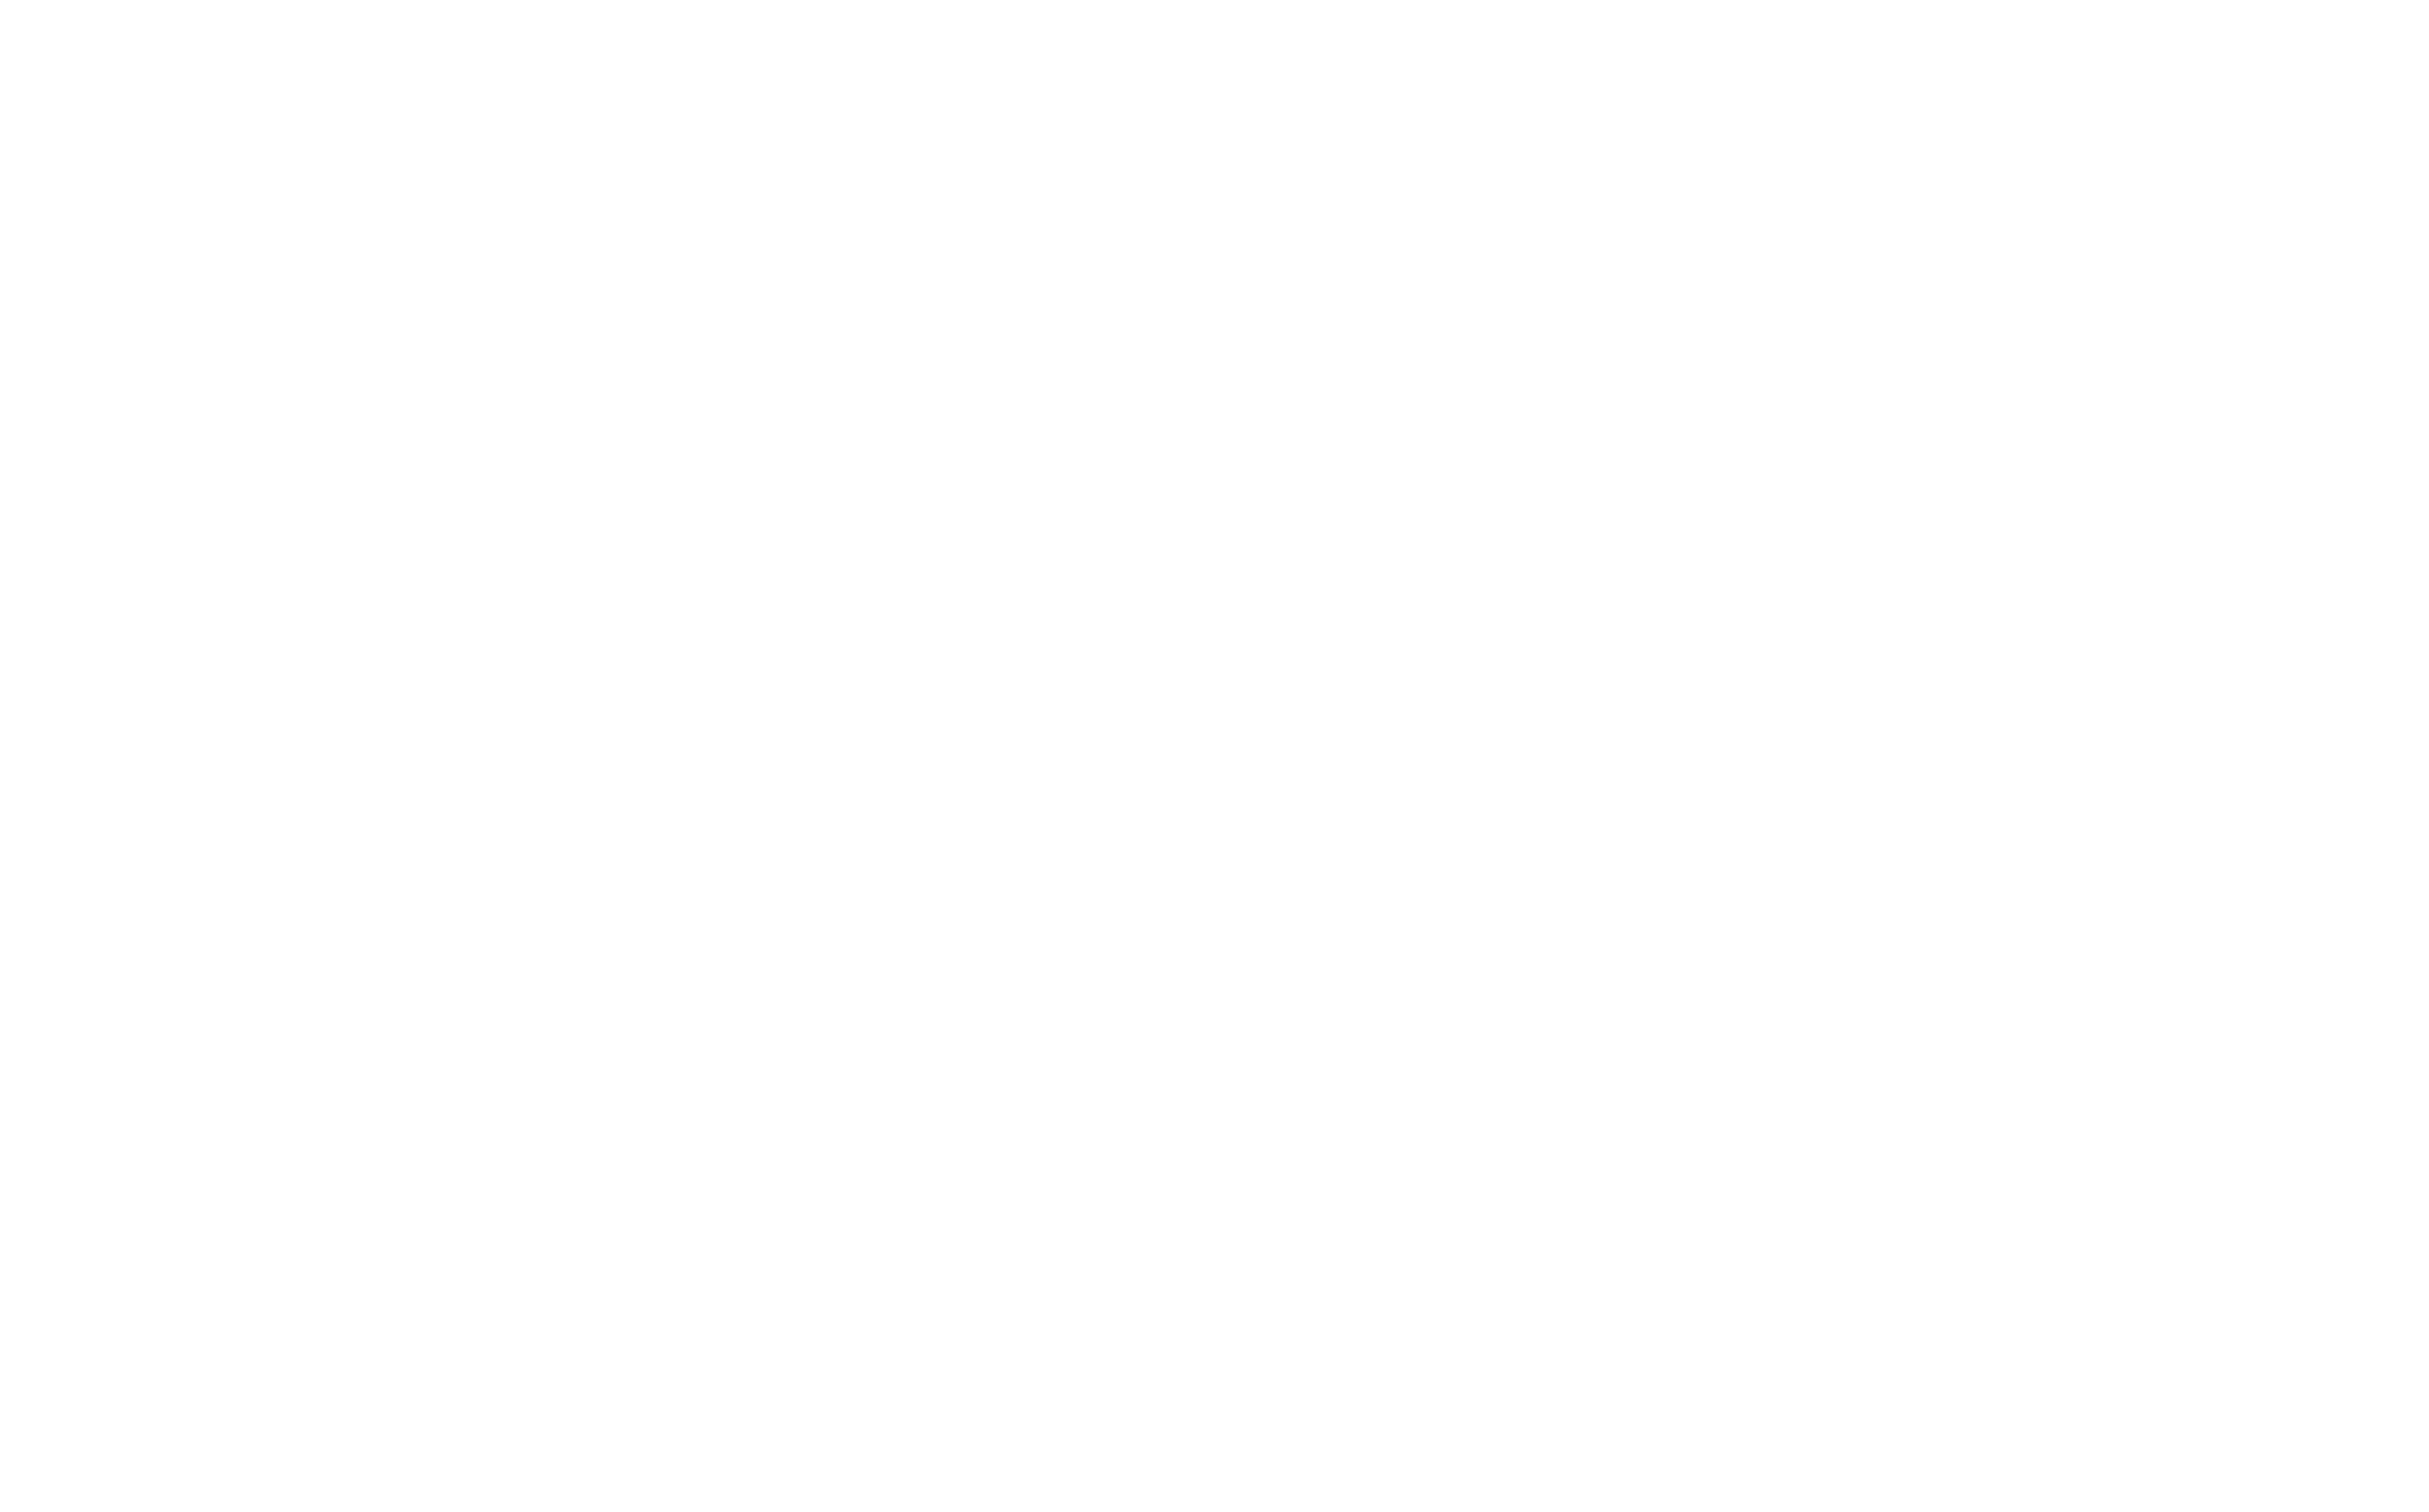 Ressler Angus Ranch - Ready and Reliable to provide you with quality Angus cattle. Located in Cooperstown, North Dakota